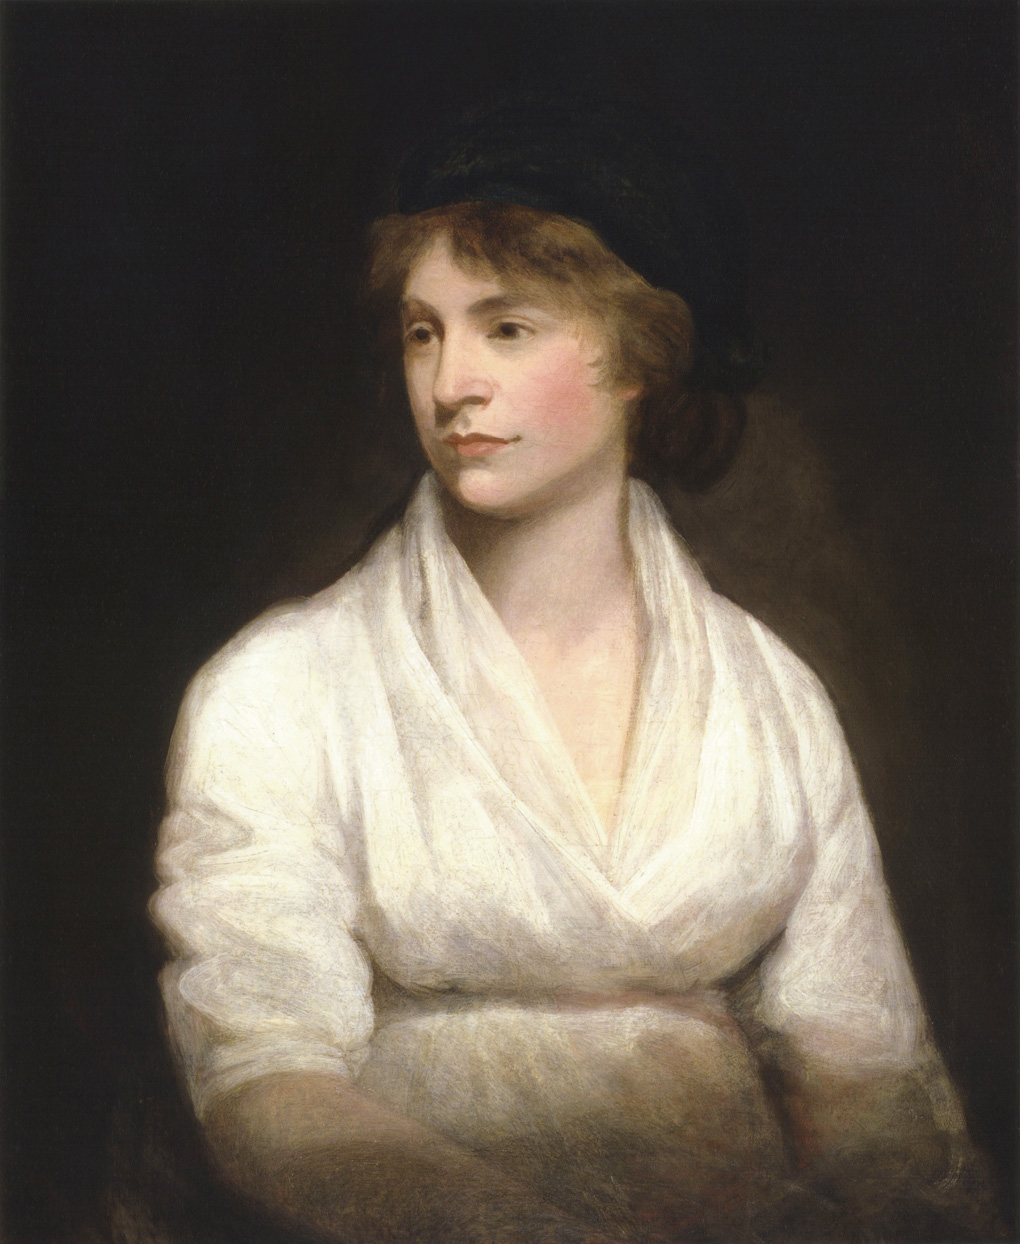 Mary Wollstonecraft to become the subject of some Bronze Statuecraft